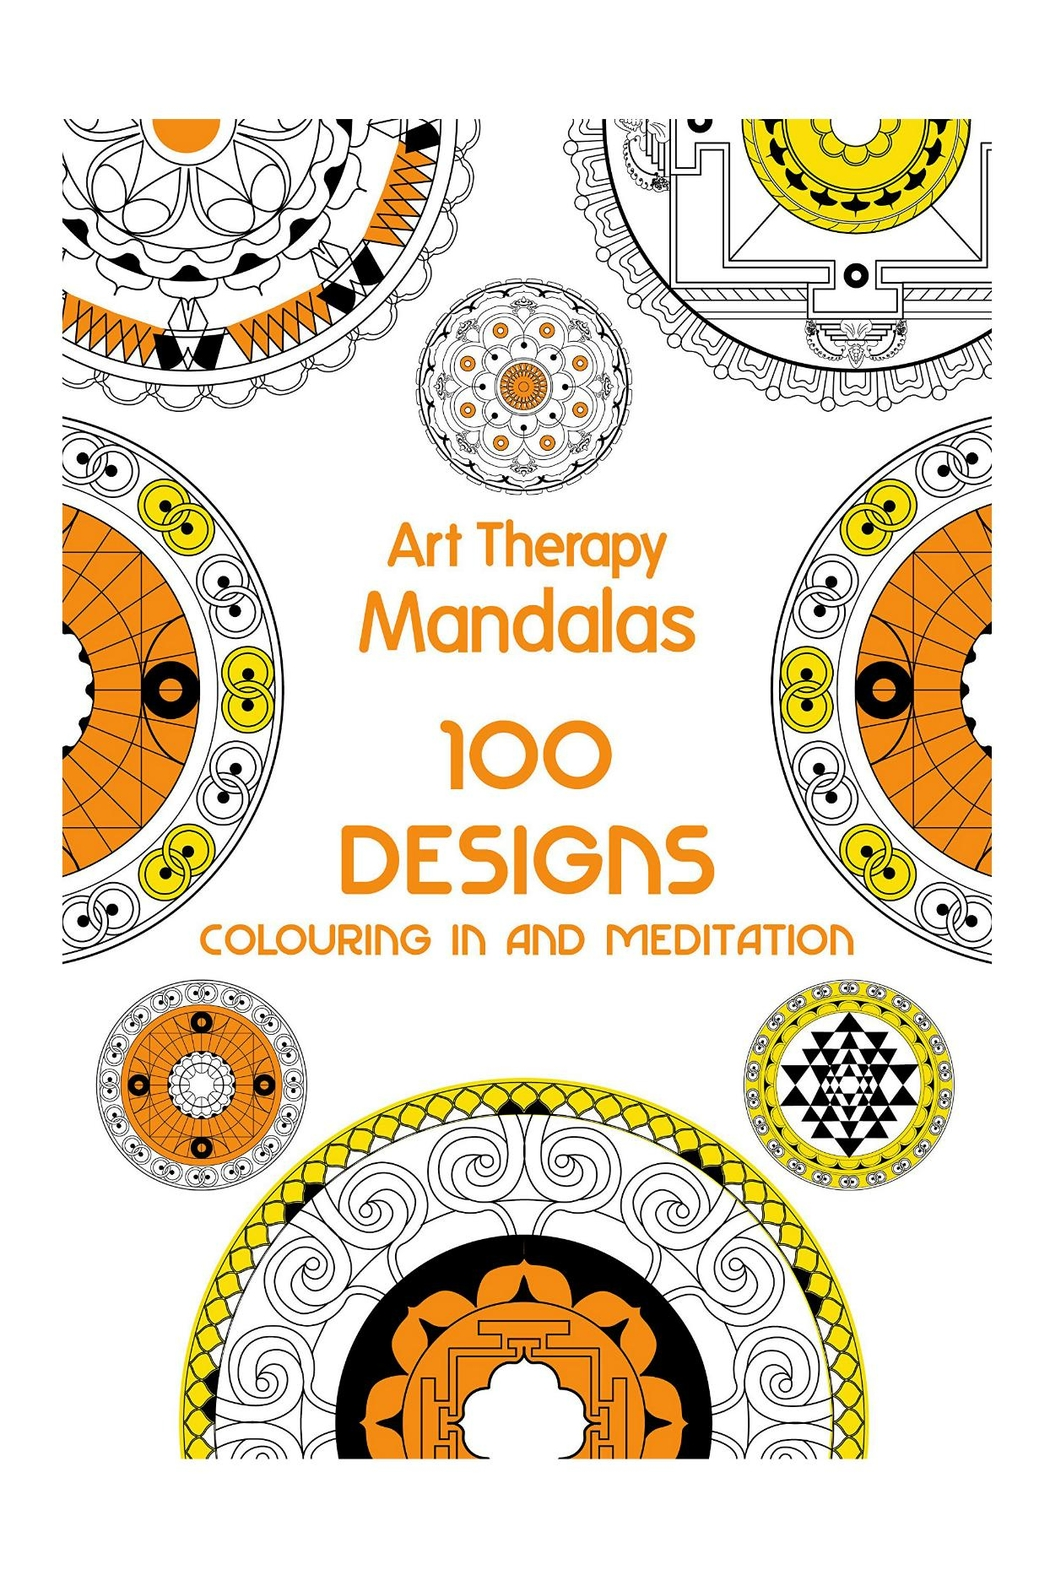 Hachette Book Group Mandalas Arttherapy Coloringbook - Main Image